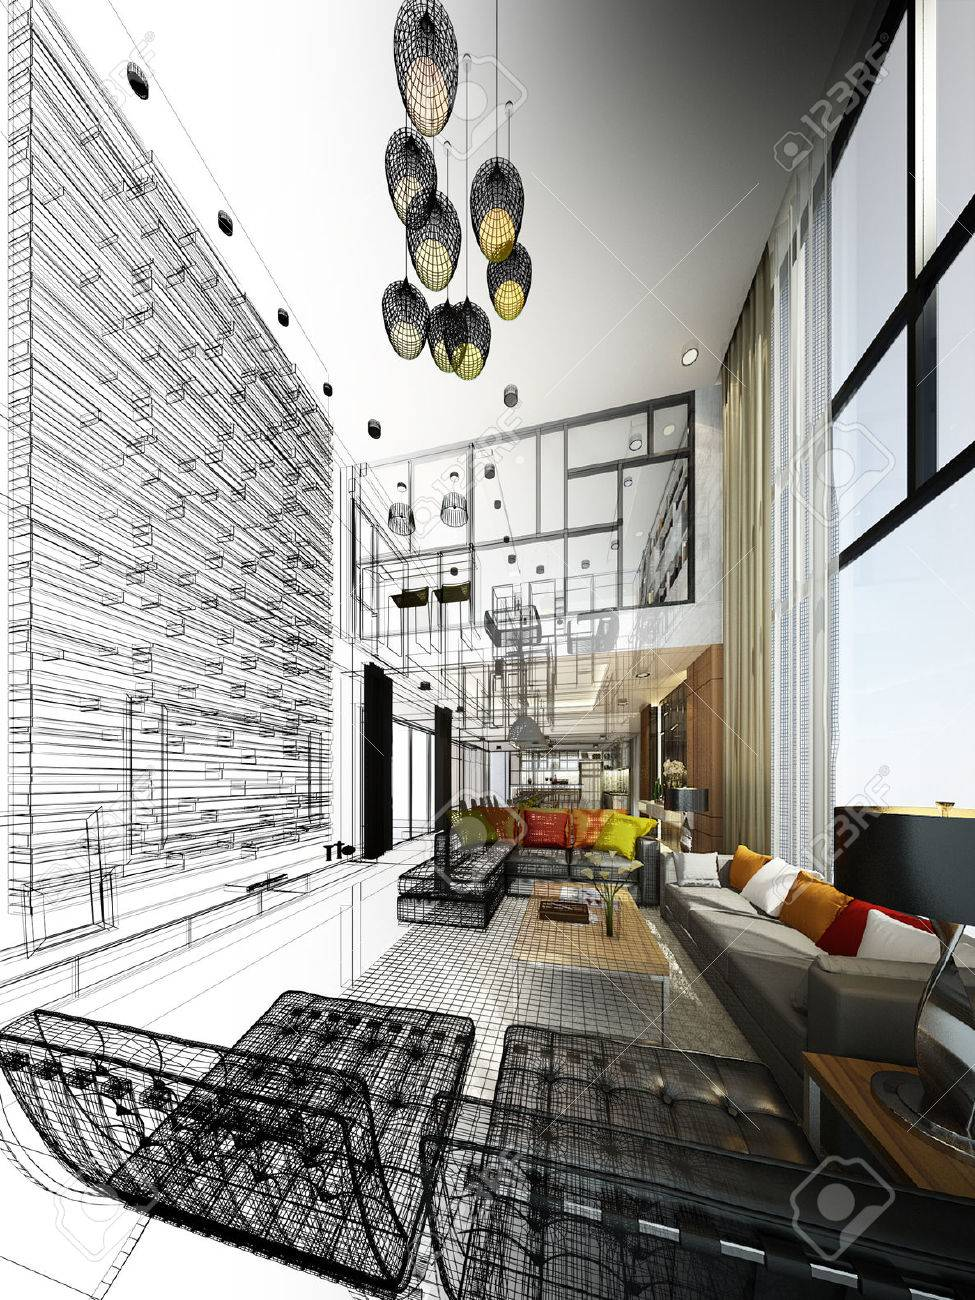 Abstract sketch design of interior living - 33218551